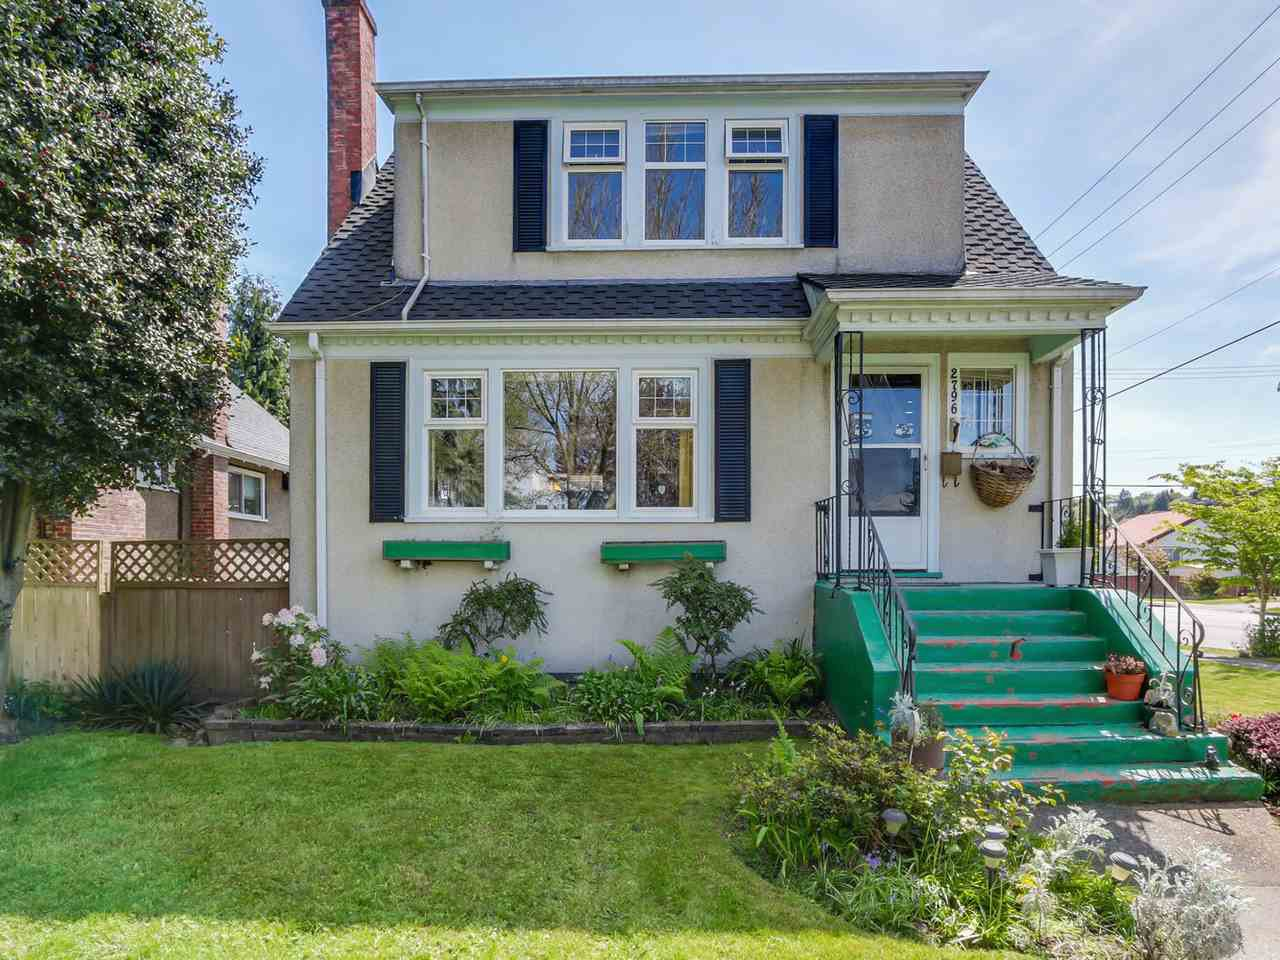 Main Photo: 2796 W 21ST Avenue in Vancouver: Arbutus House for sale (Vancouver West)  : MLS®# R2078868